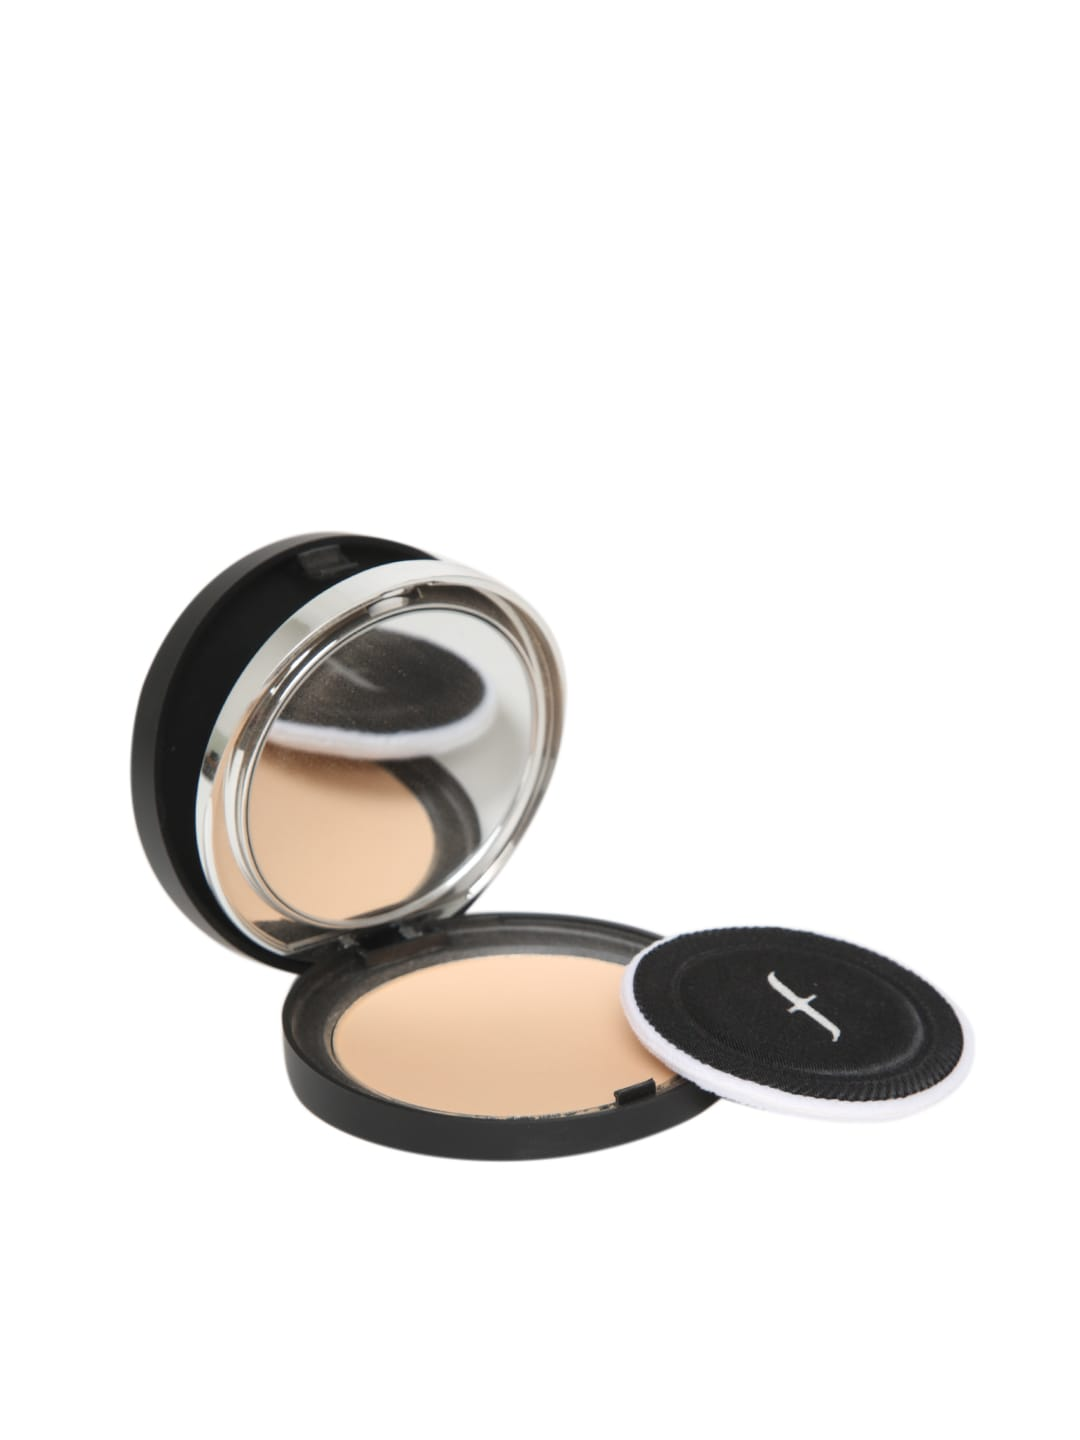 Faces Ultime Pro Second Skin Pressed Powder 9 g image